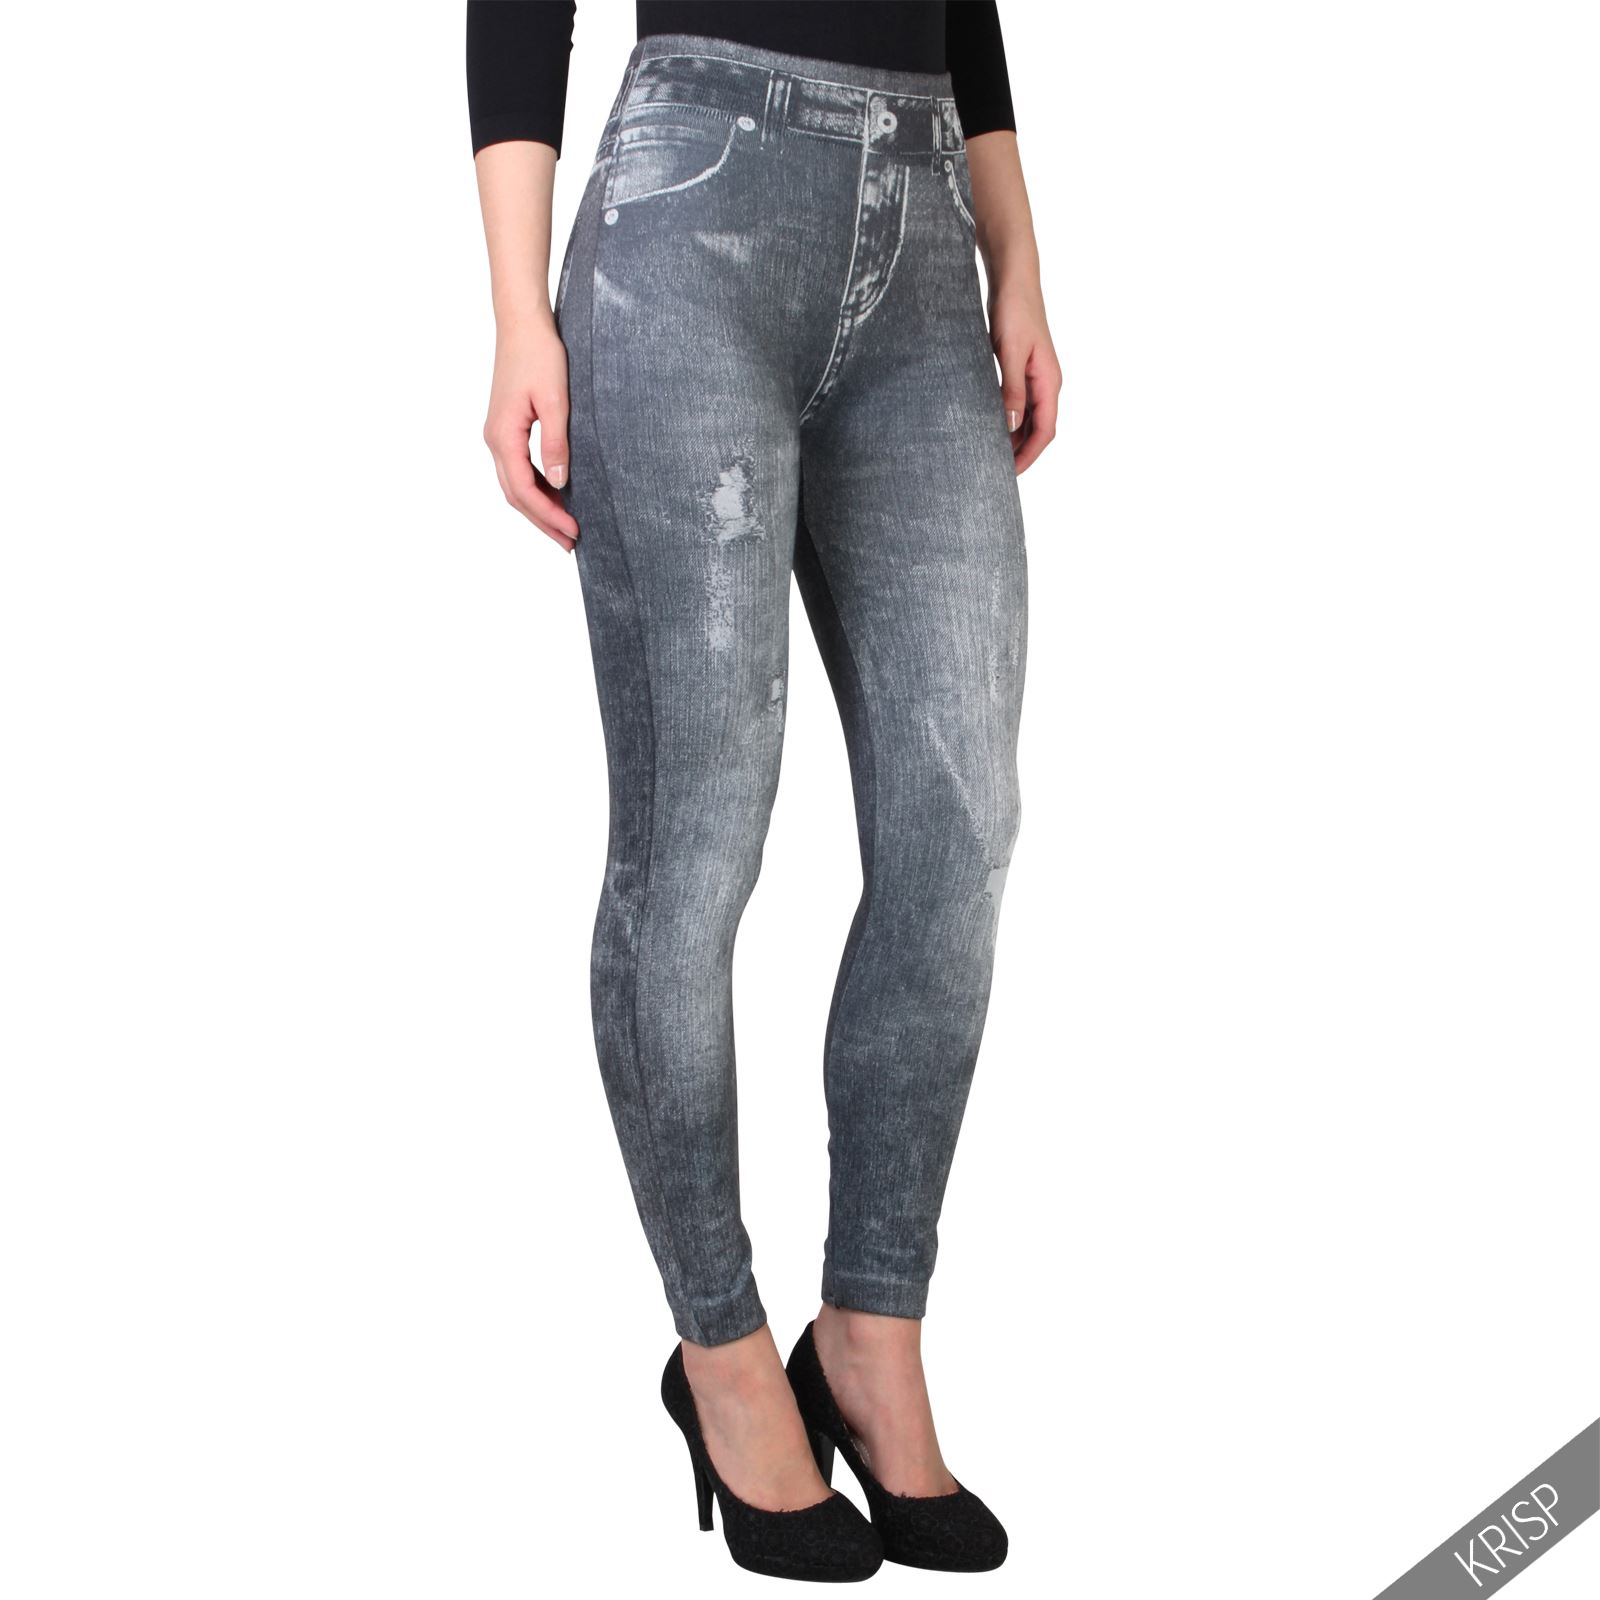 Womens-Warm-Fleece-Lined-Stretch-Denim-Jeans-Thermal-Winter-Leggings-Jeggings thumbnail 2